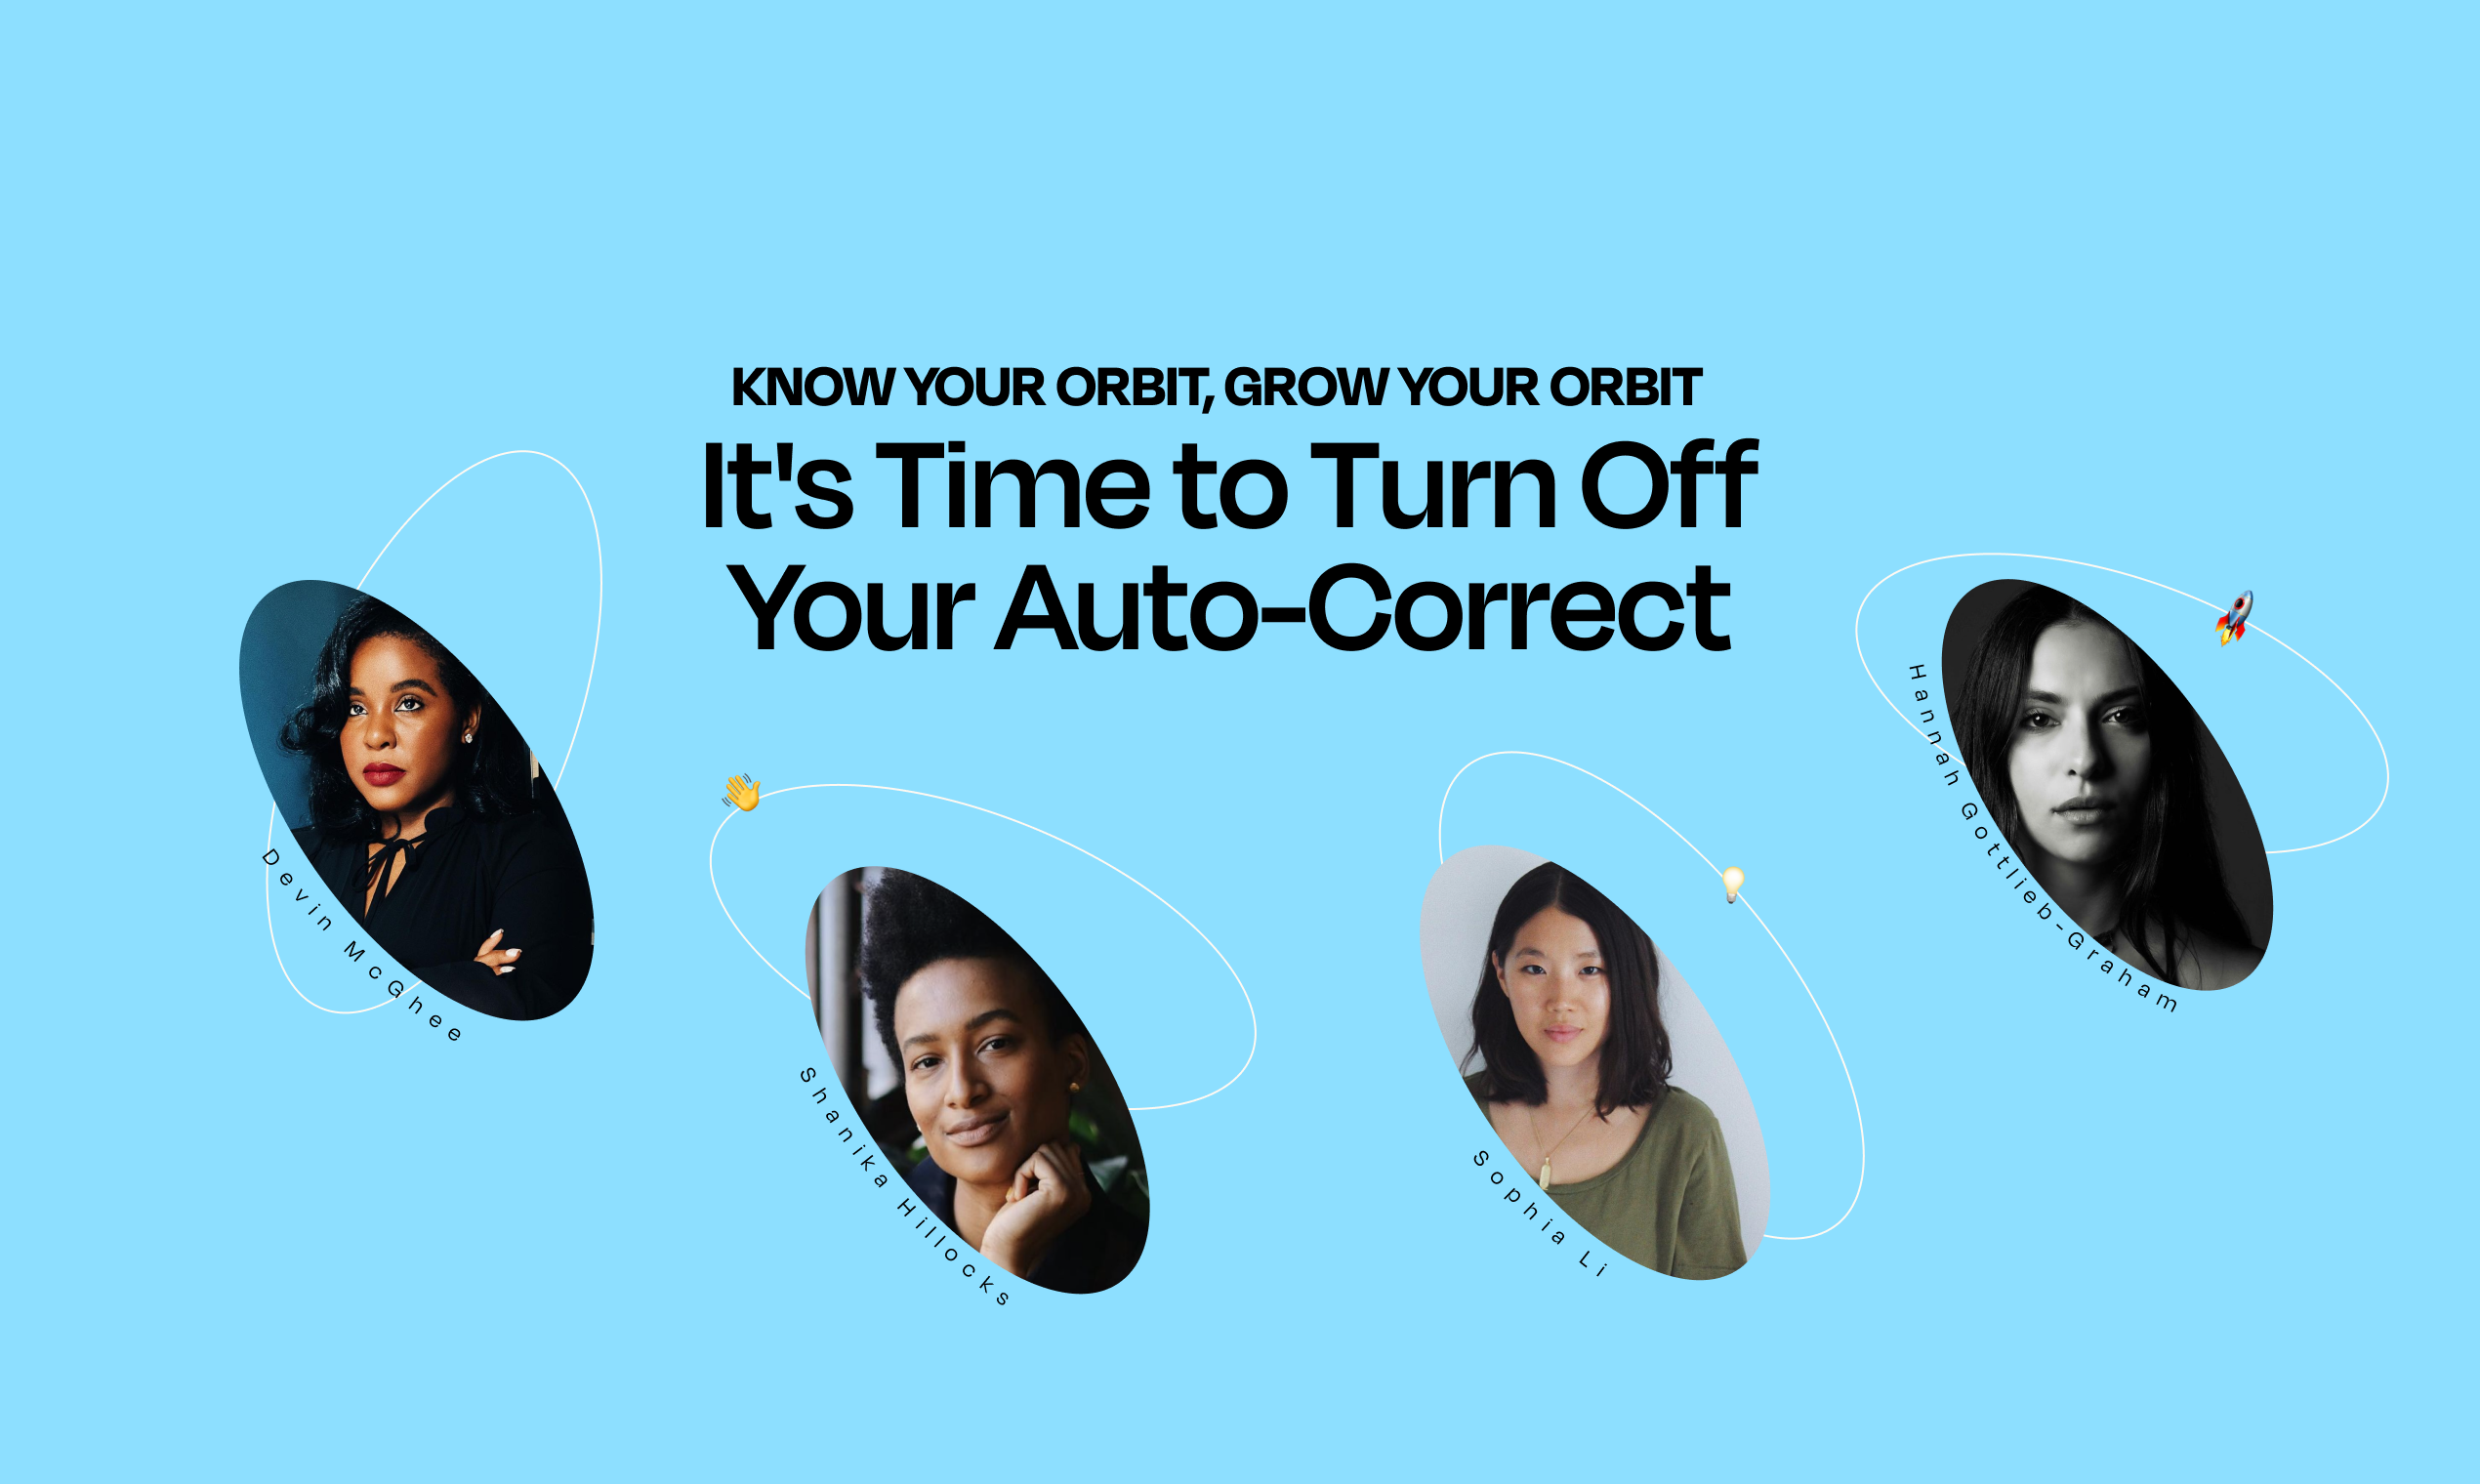 Know Your Orbit, Grow Your Orbit Event 1 Recap: It's Time To Turn Off Your Autocorrect